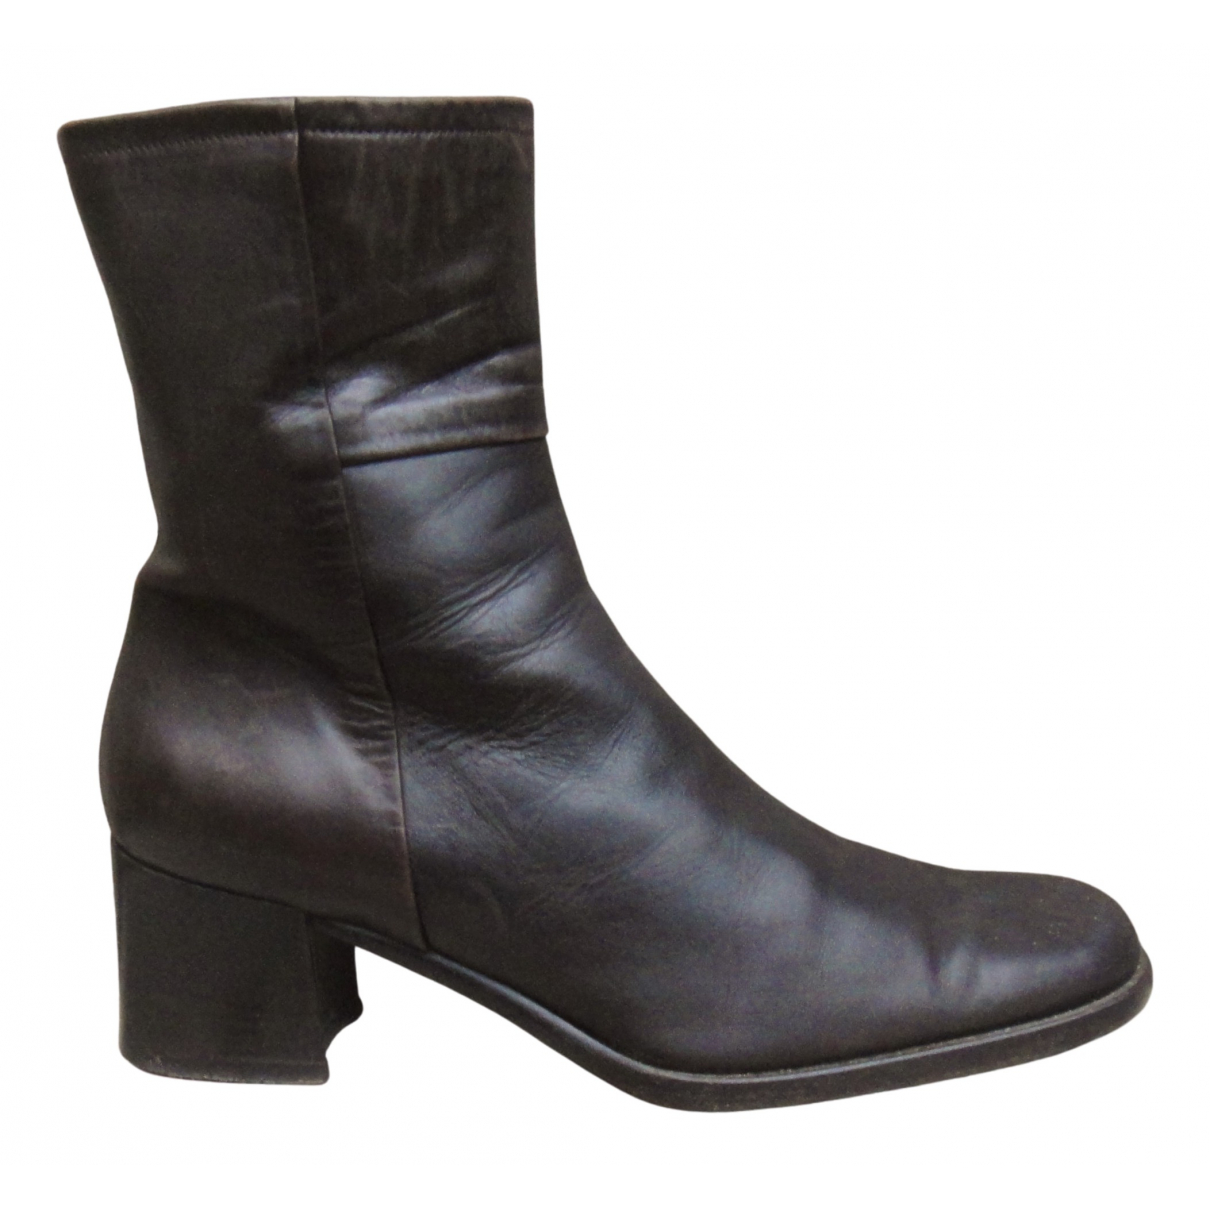 Bally N Brown Leather Ankle boots for Women 39 EU